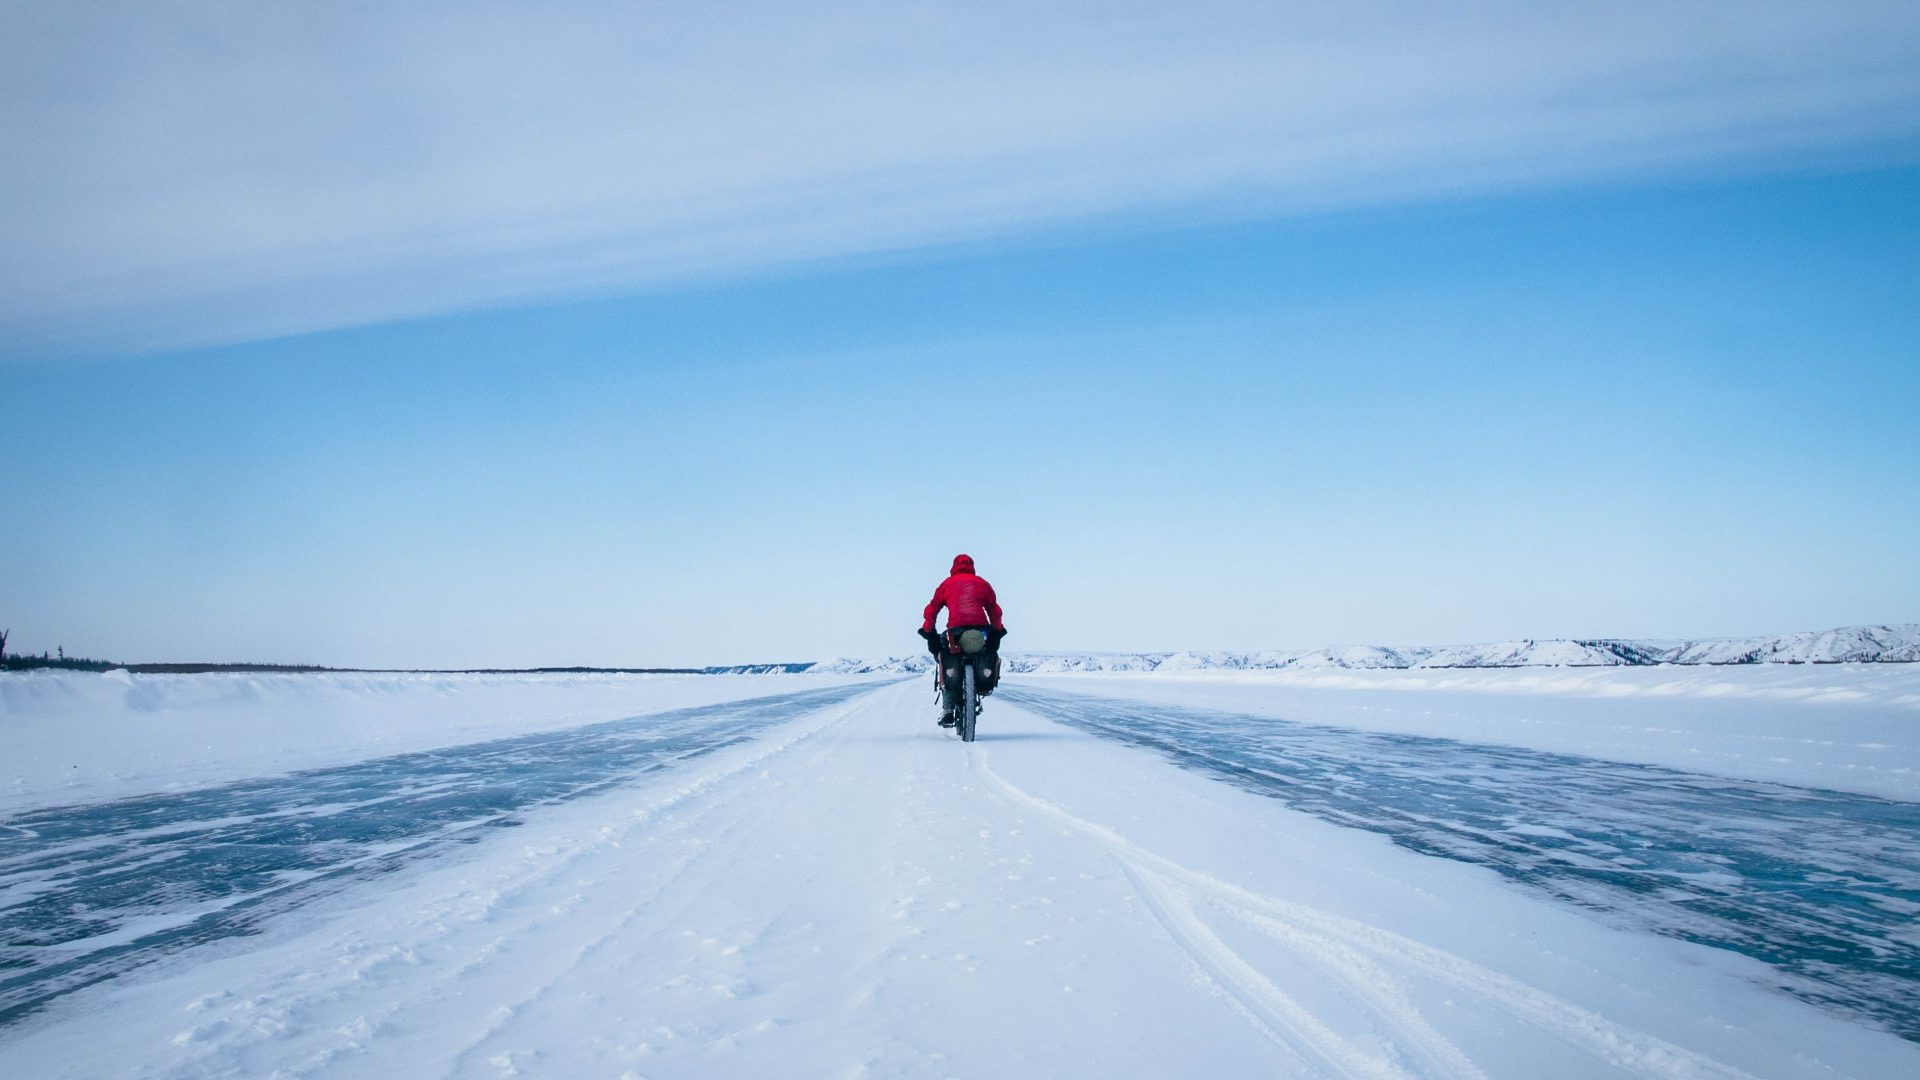 Cycling along the frozen MacKenzie River, Canada.